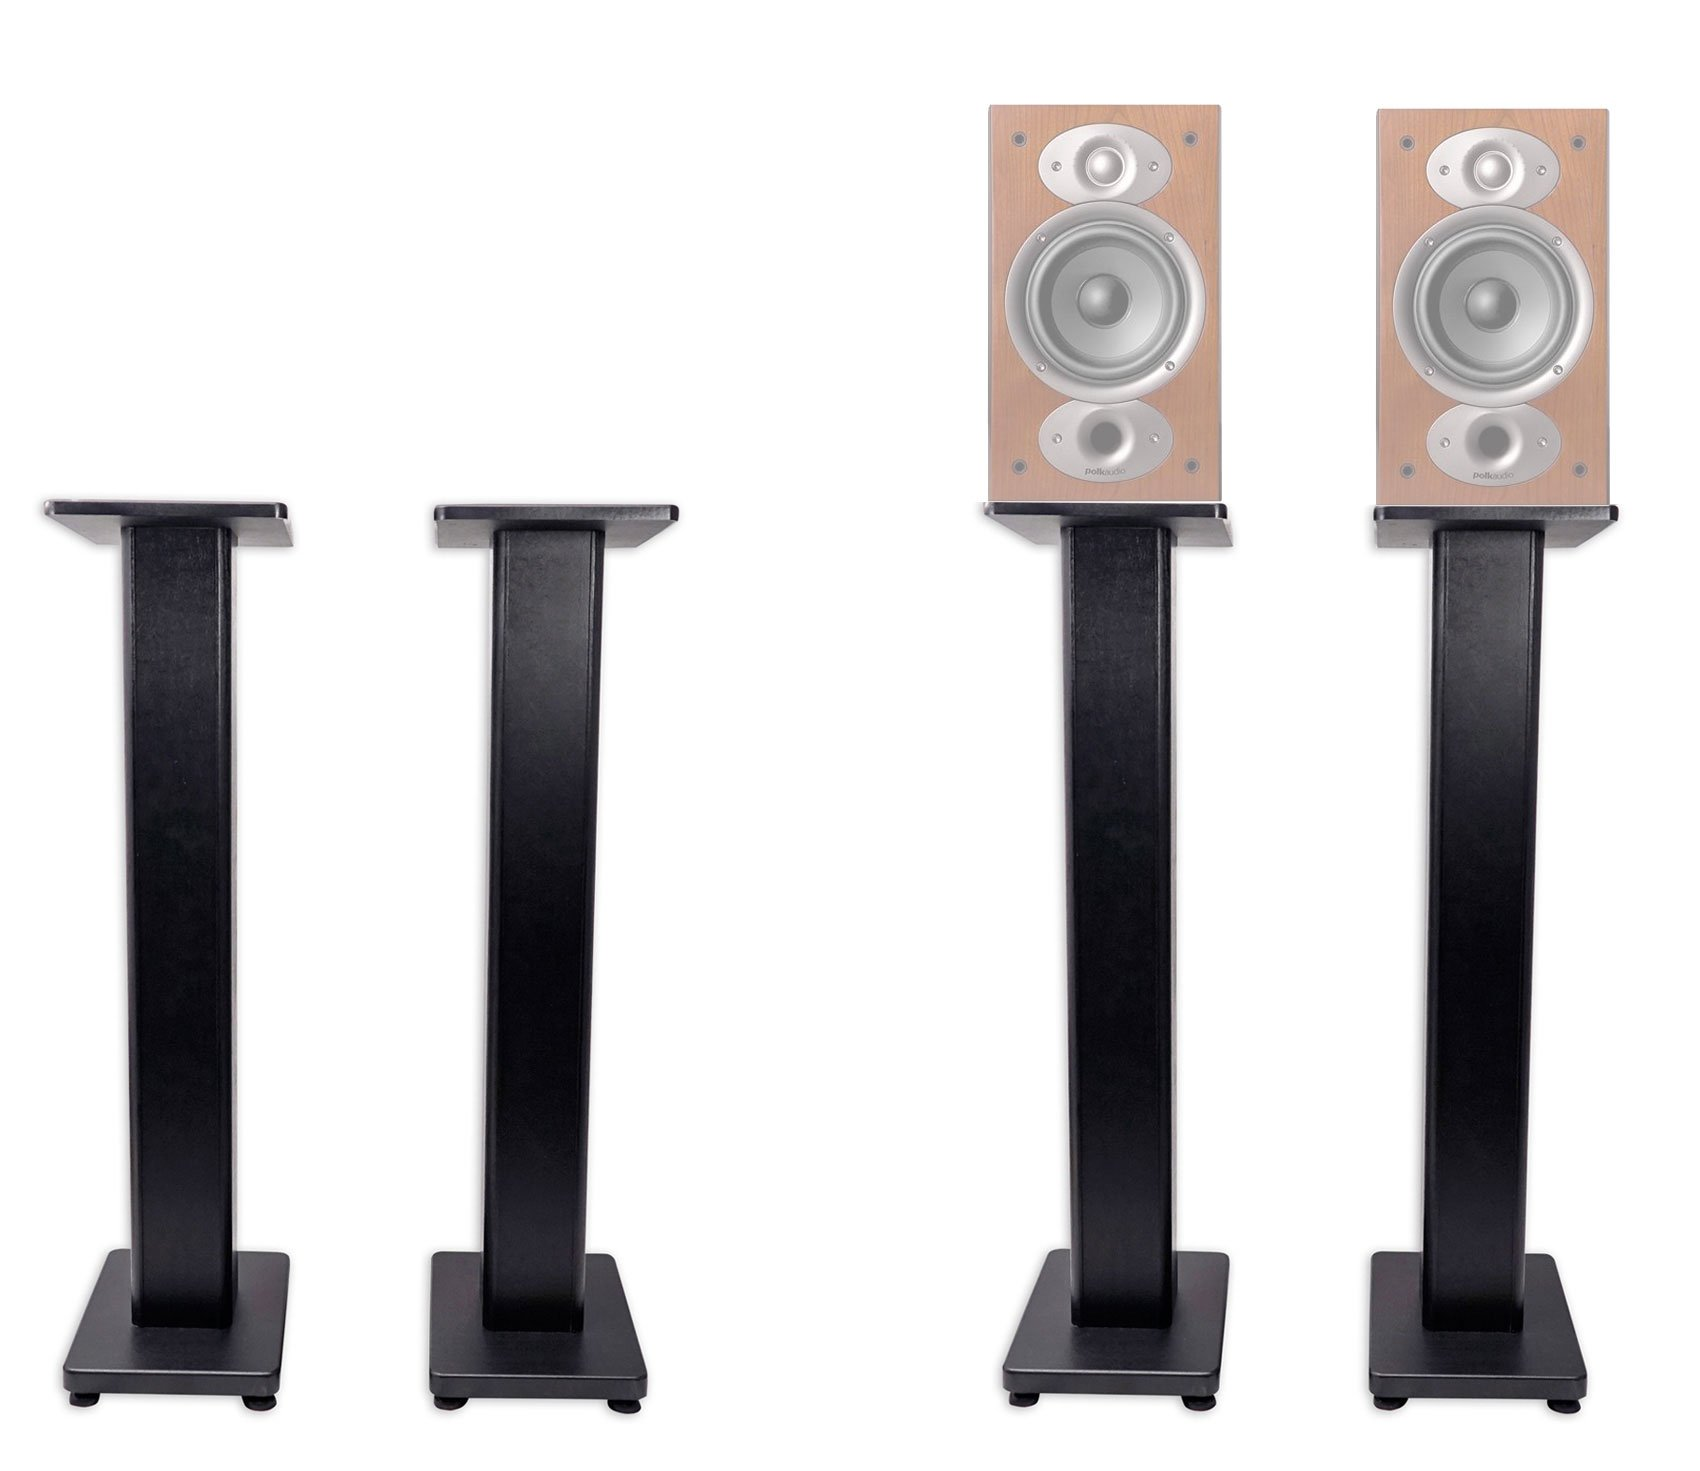 Pair 36'' Bookshelf Speaker Stands For Polk Audio RTI A3 Bookshelf Speakers